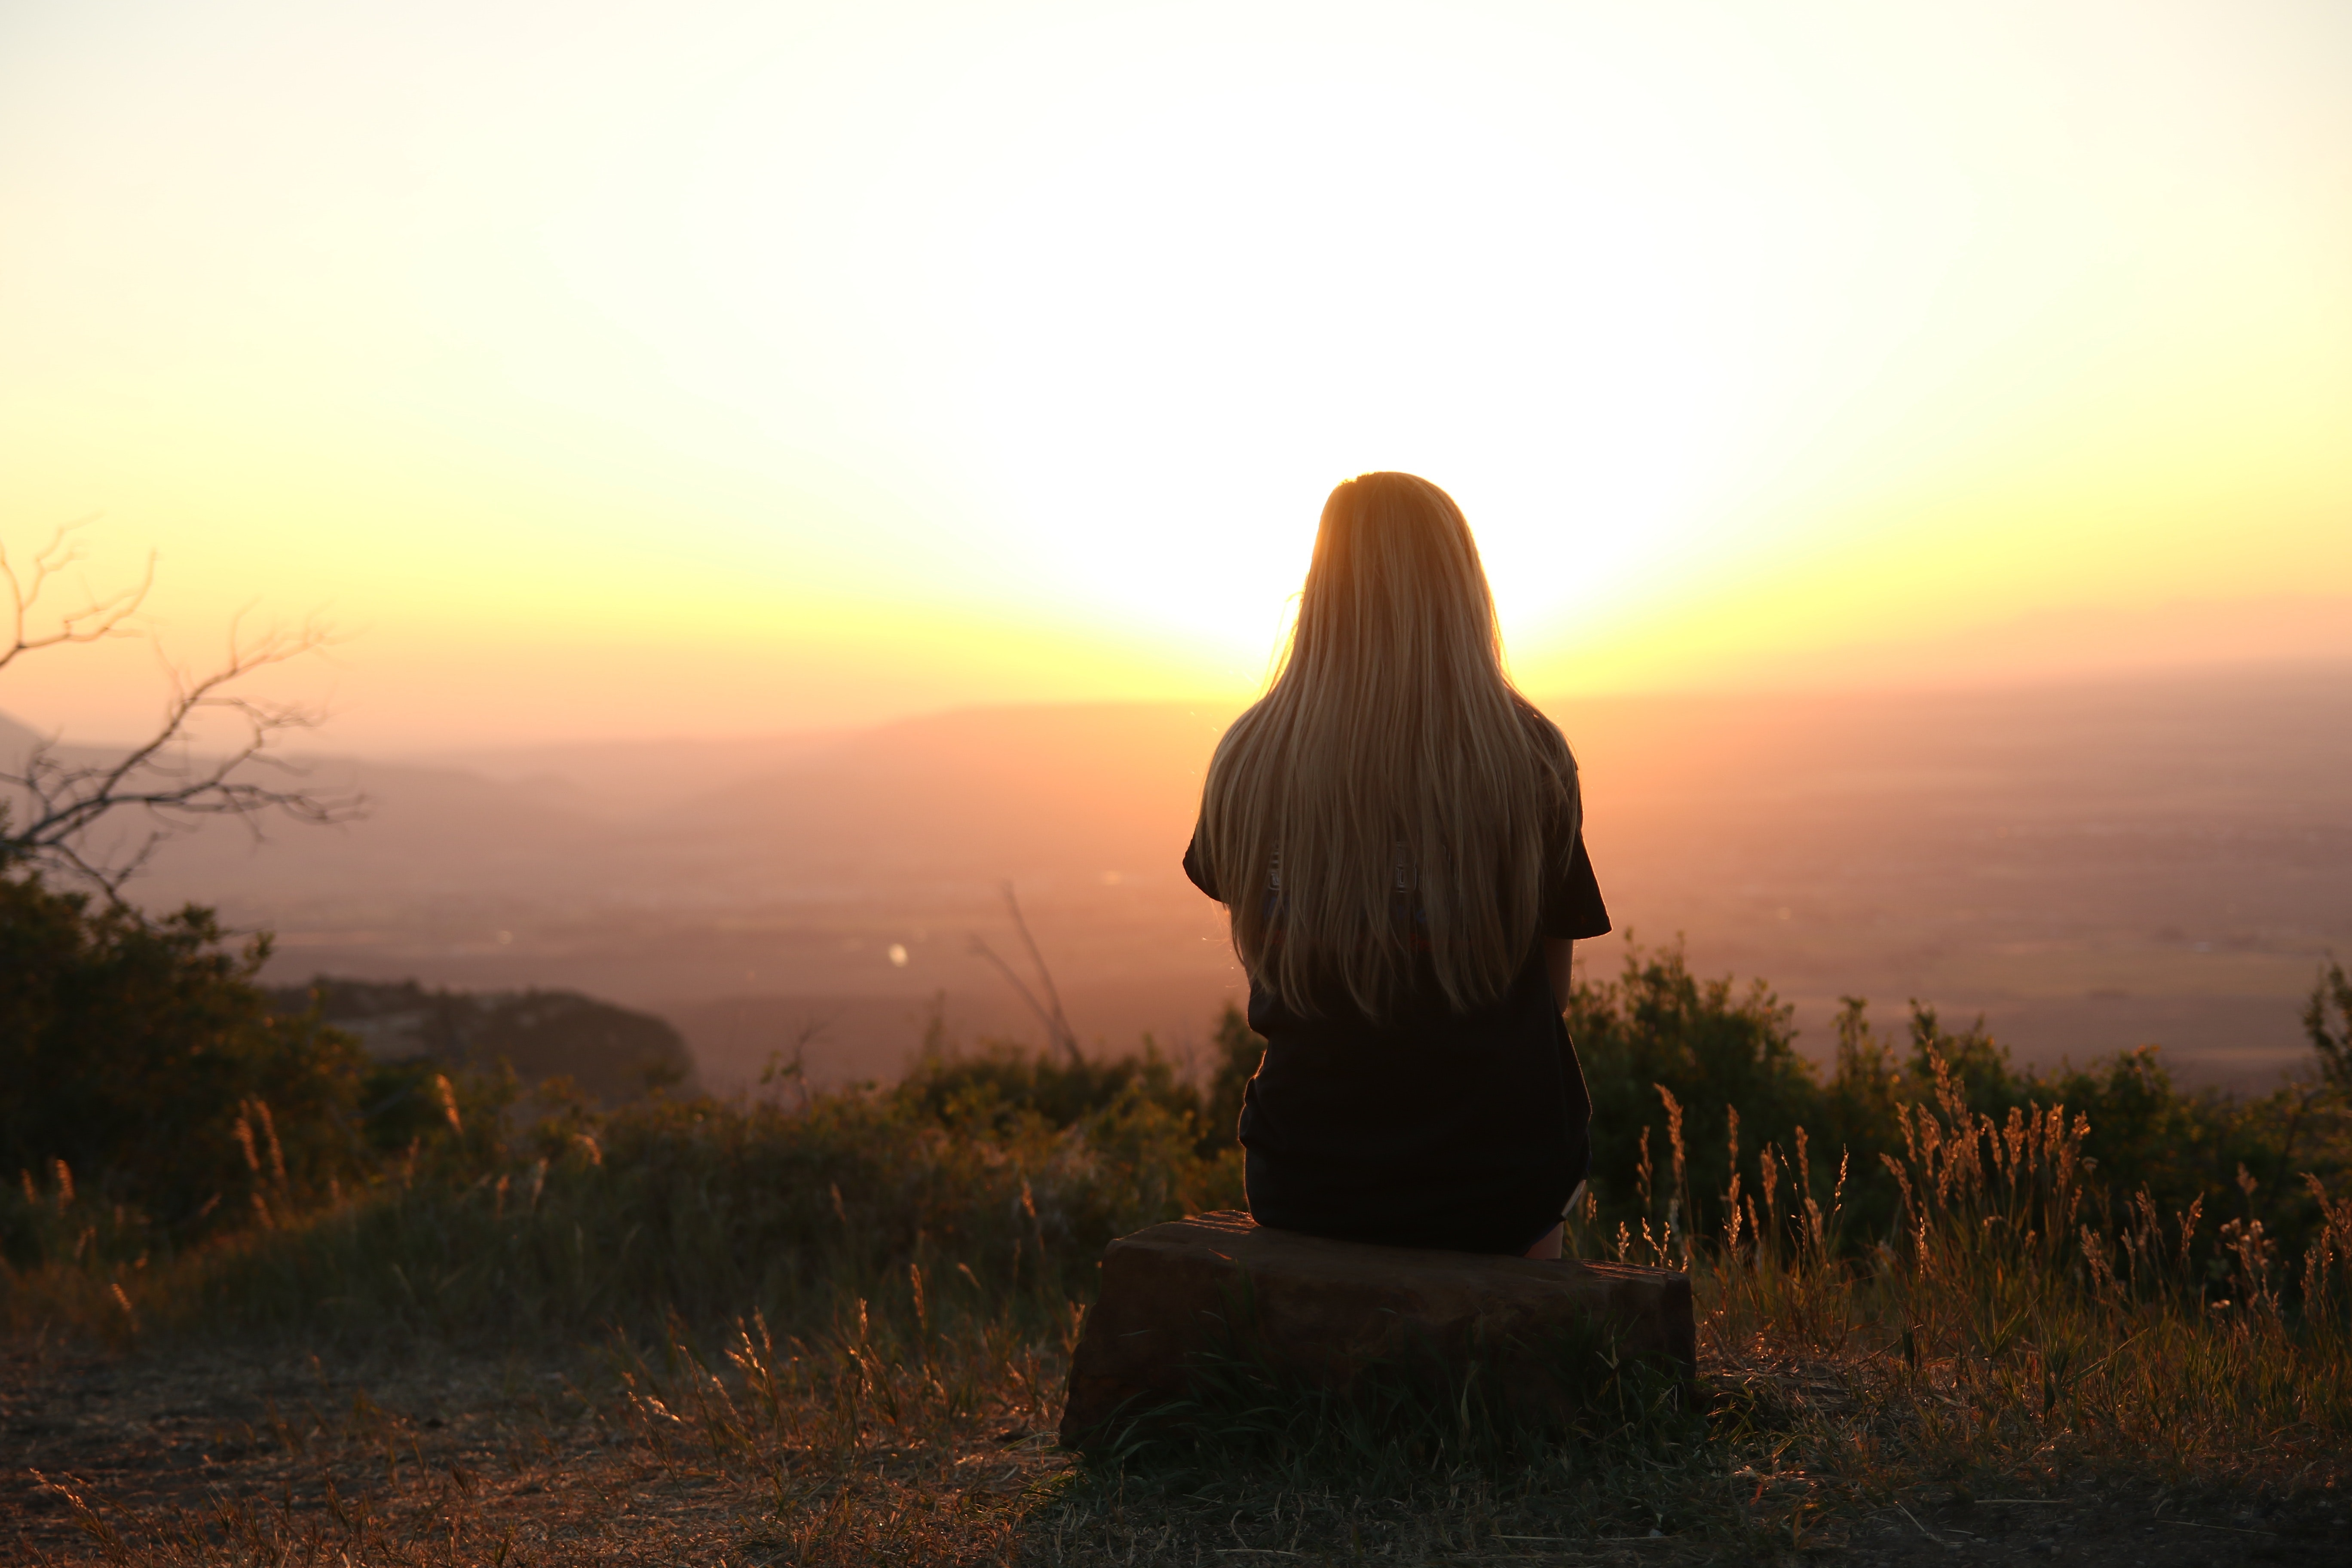 Woman Looking at Sunset, Mountain, Woman, Travel, Thinking, HQ Photo